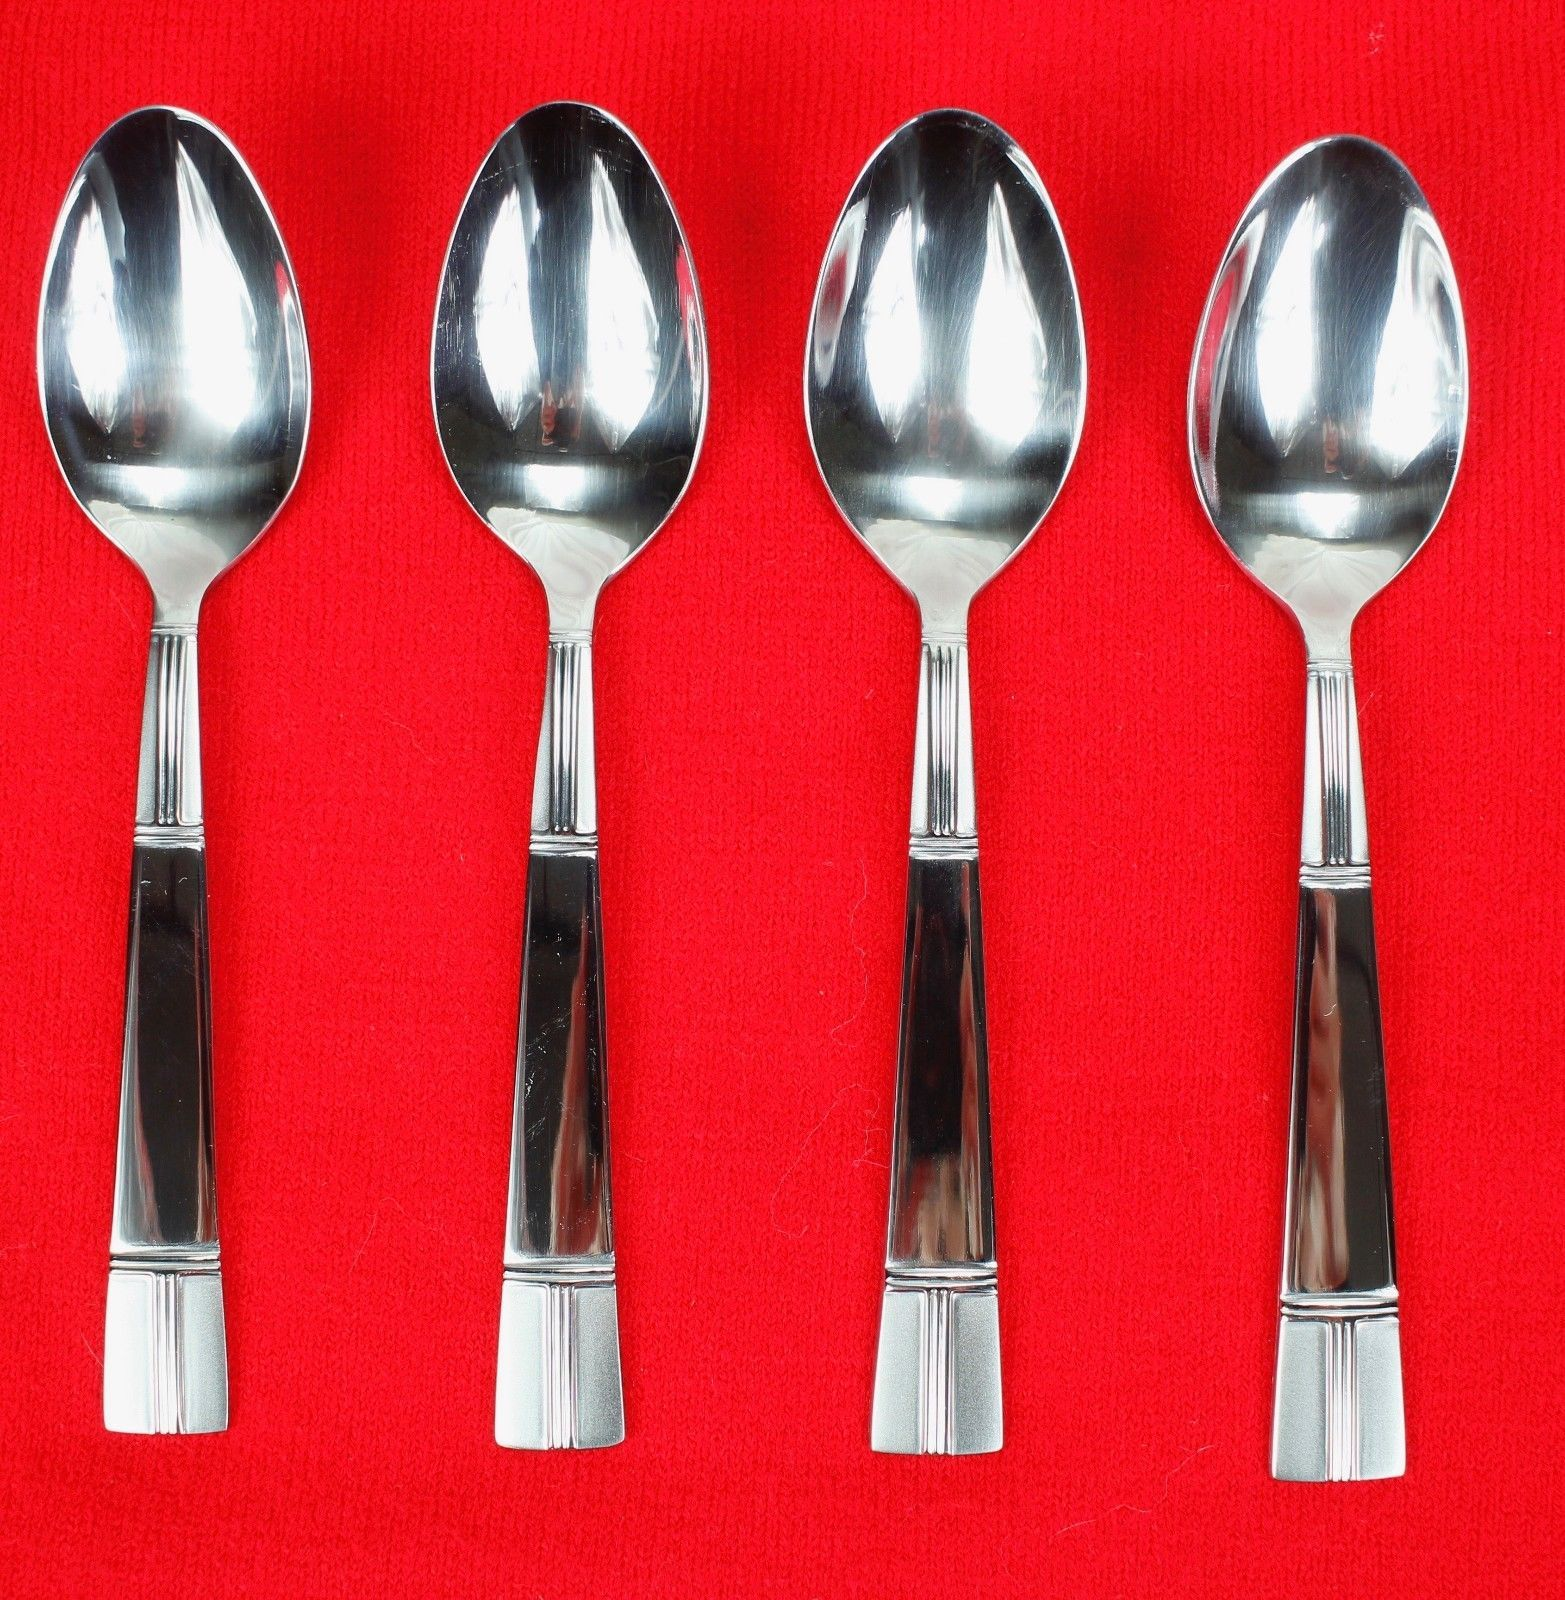 4X Teaspoons Spoons Towle Living Collection TWS515 Stainless Glossy Flatware